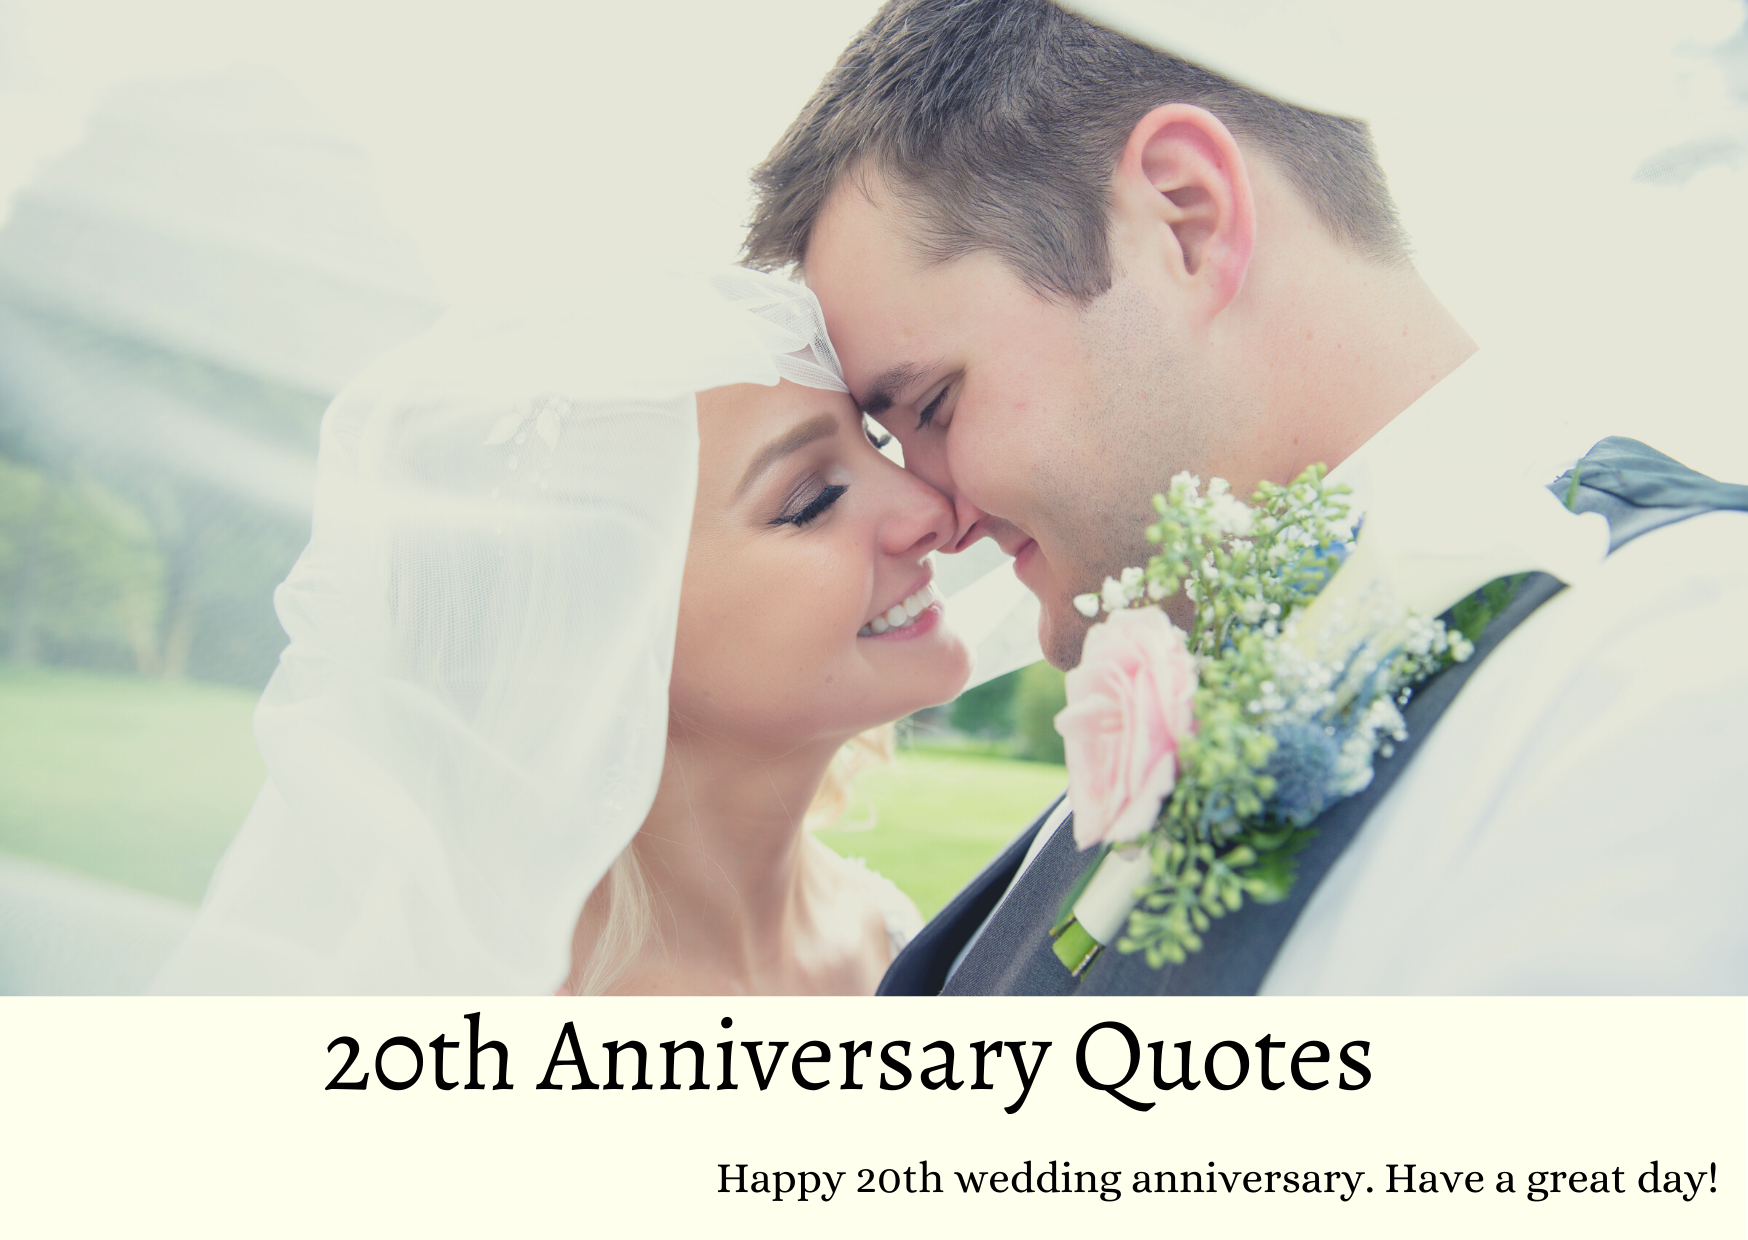 Happy 20 Year Anniversary Quotes and Wishes for Husband, Wife, and Parents